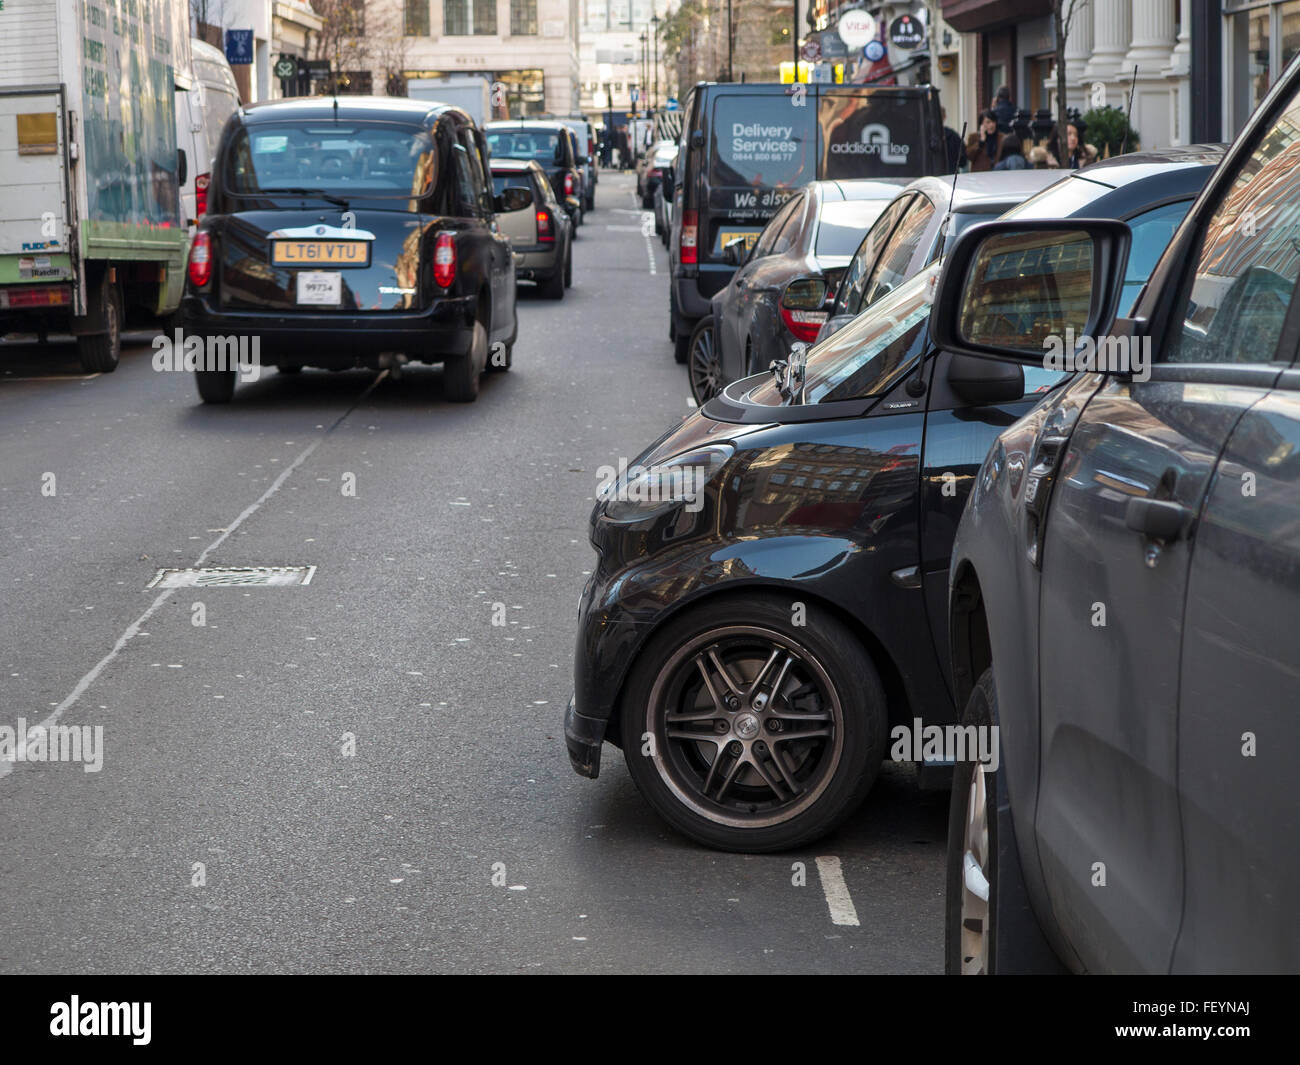 A small car parked sideways - Stock Image